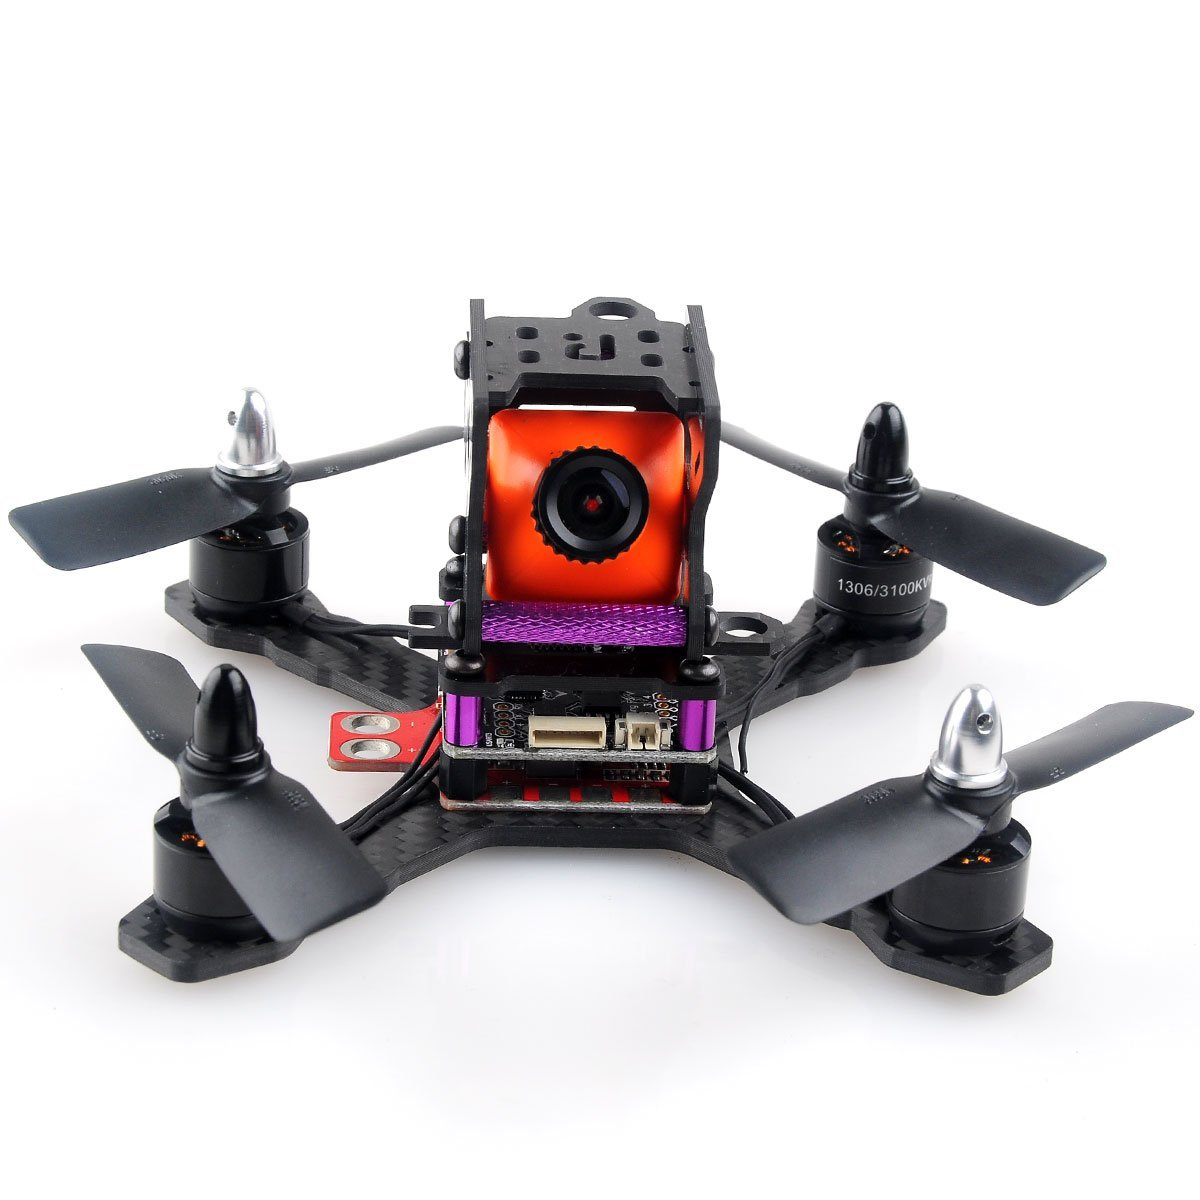 Crazepony X150 FPV Racing Drone